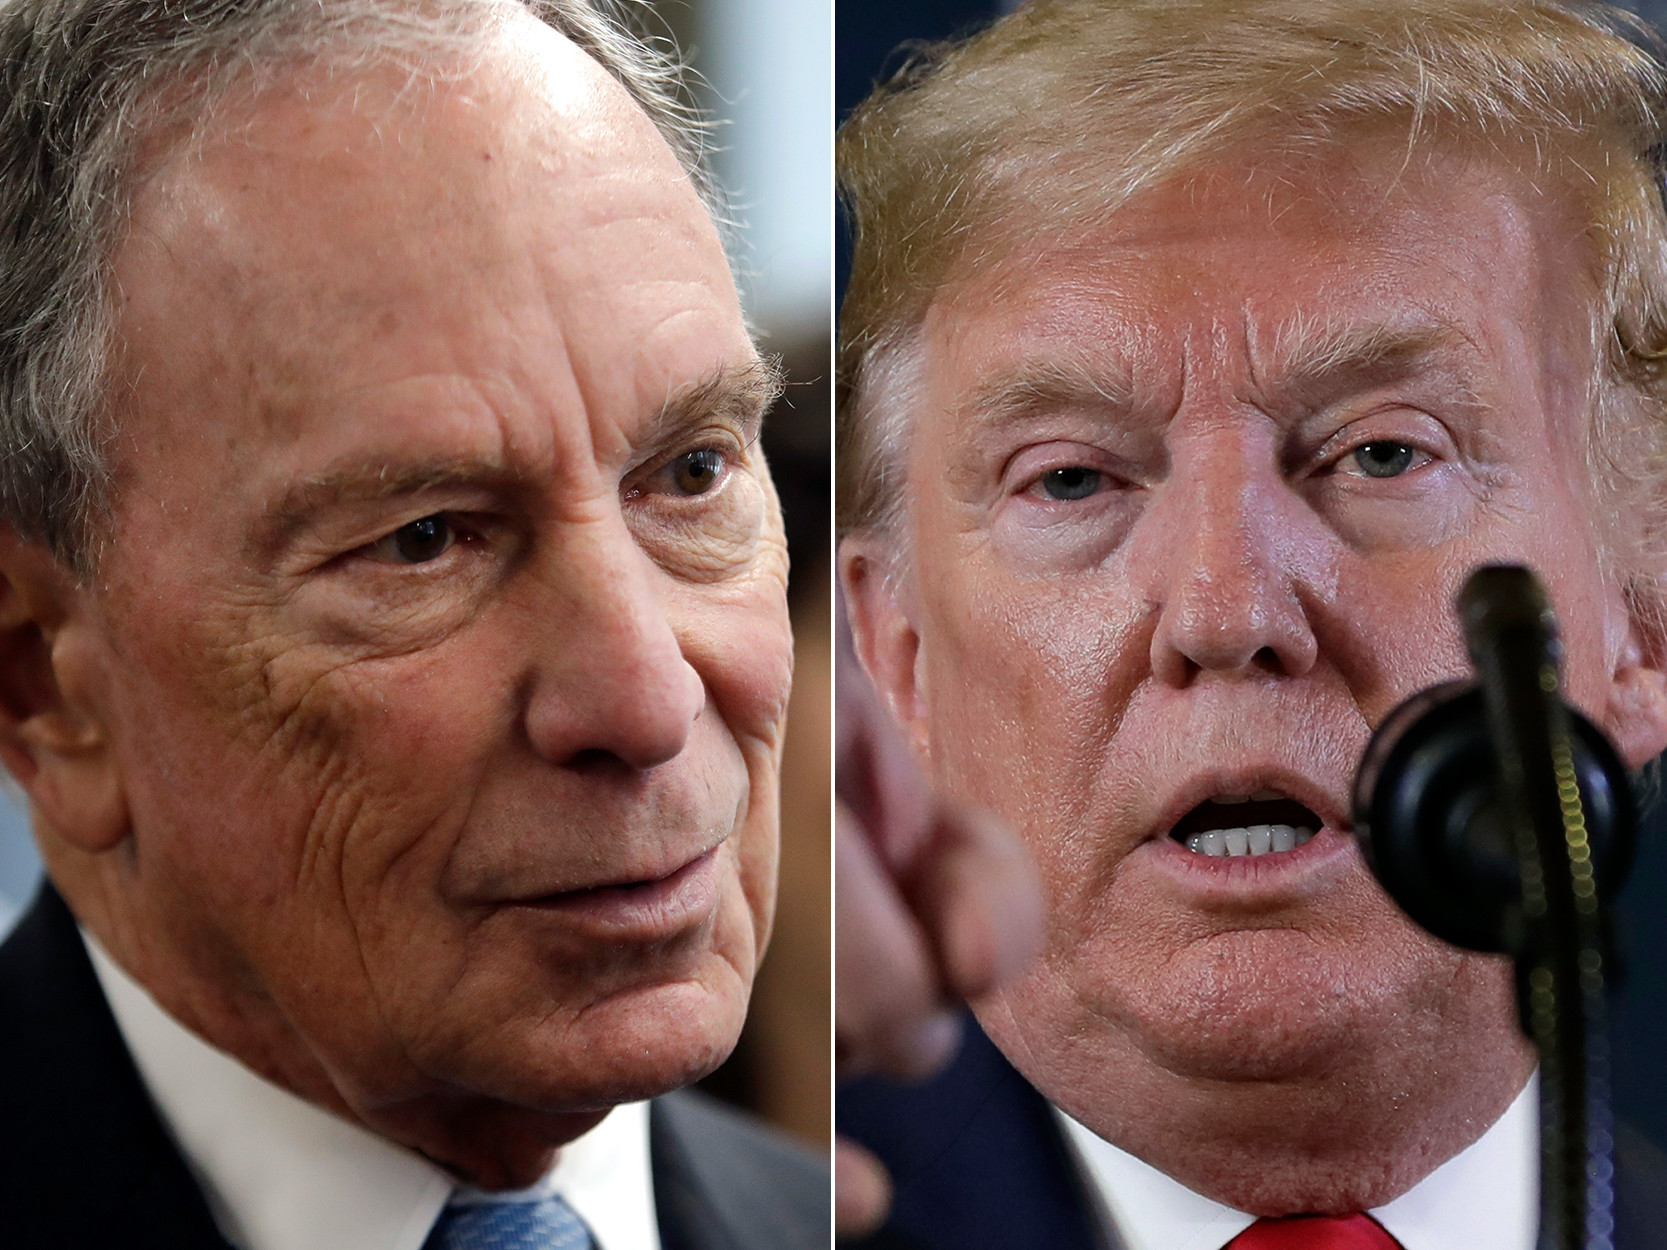 Trump trashes 'Mini Mike' Bloomberg after miserable debate night